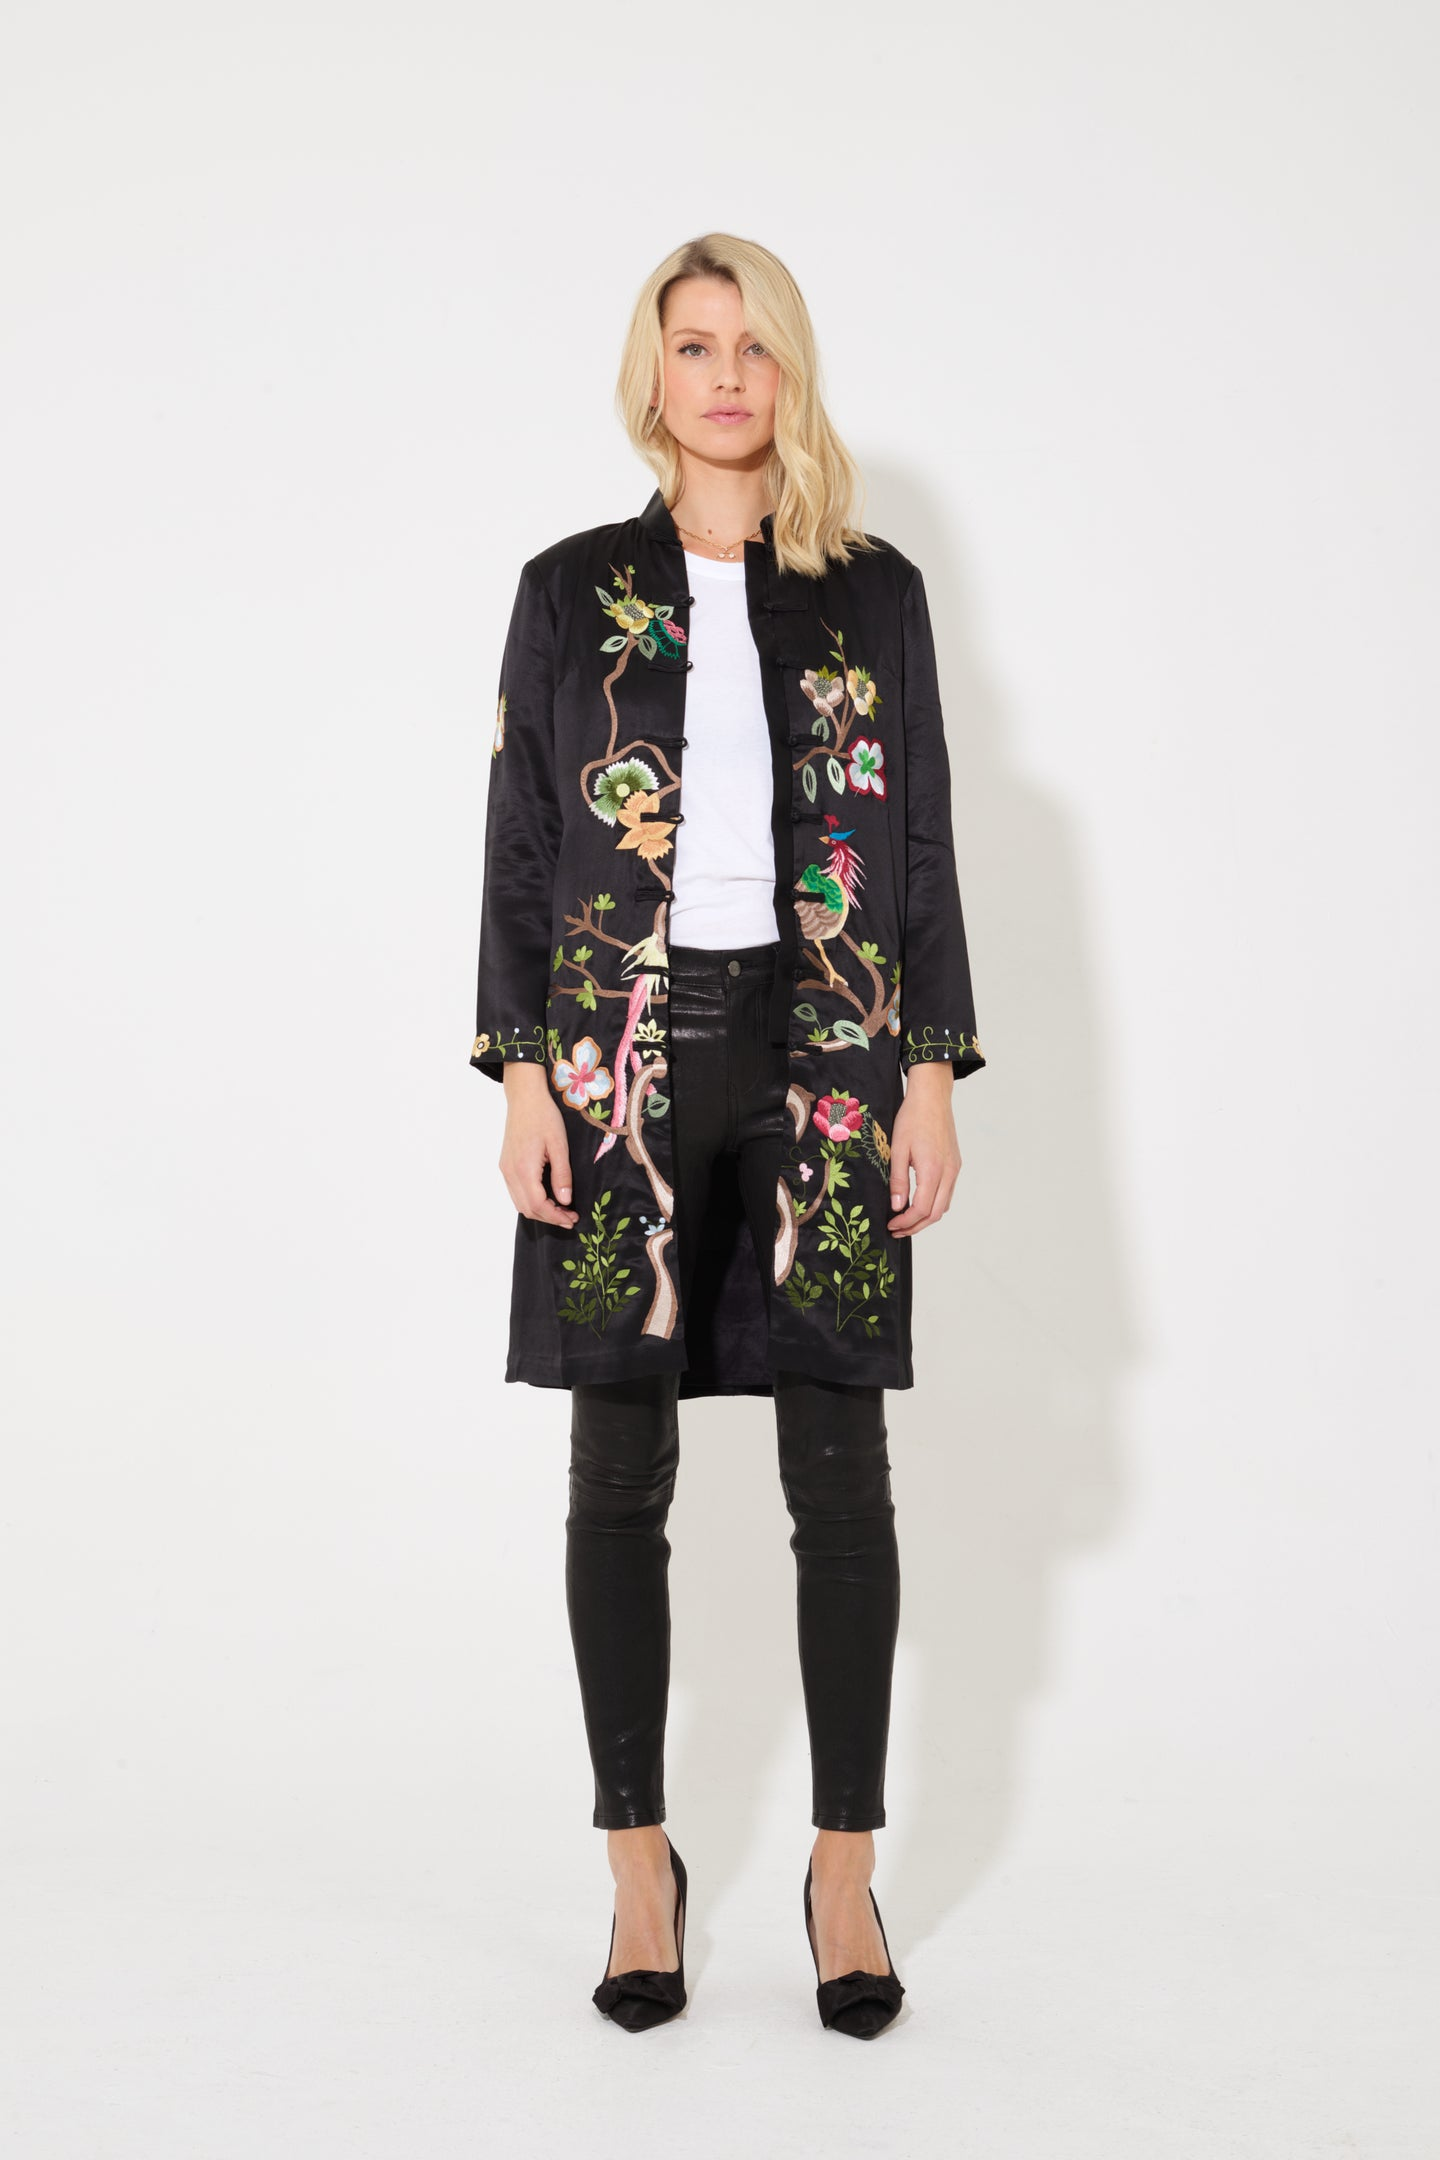 China Doll The Embroidered Statement Coat - Hong Kong Calling